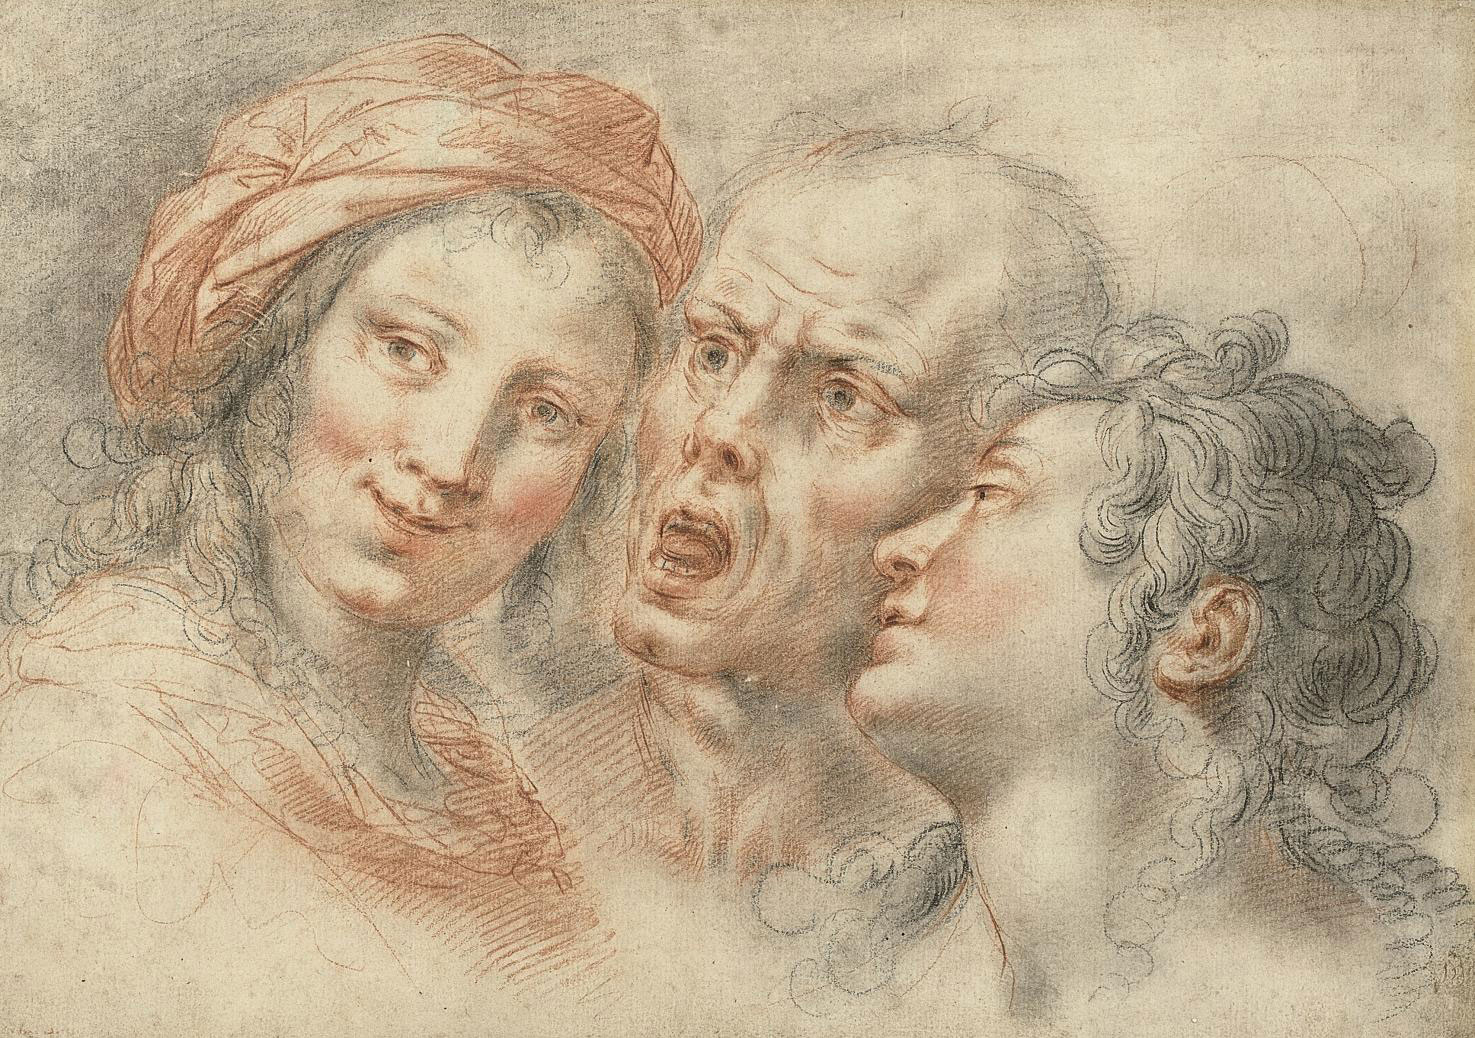 Three studies of heads: a young woman, a shouting man and a youth